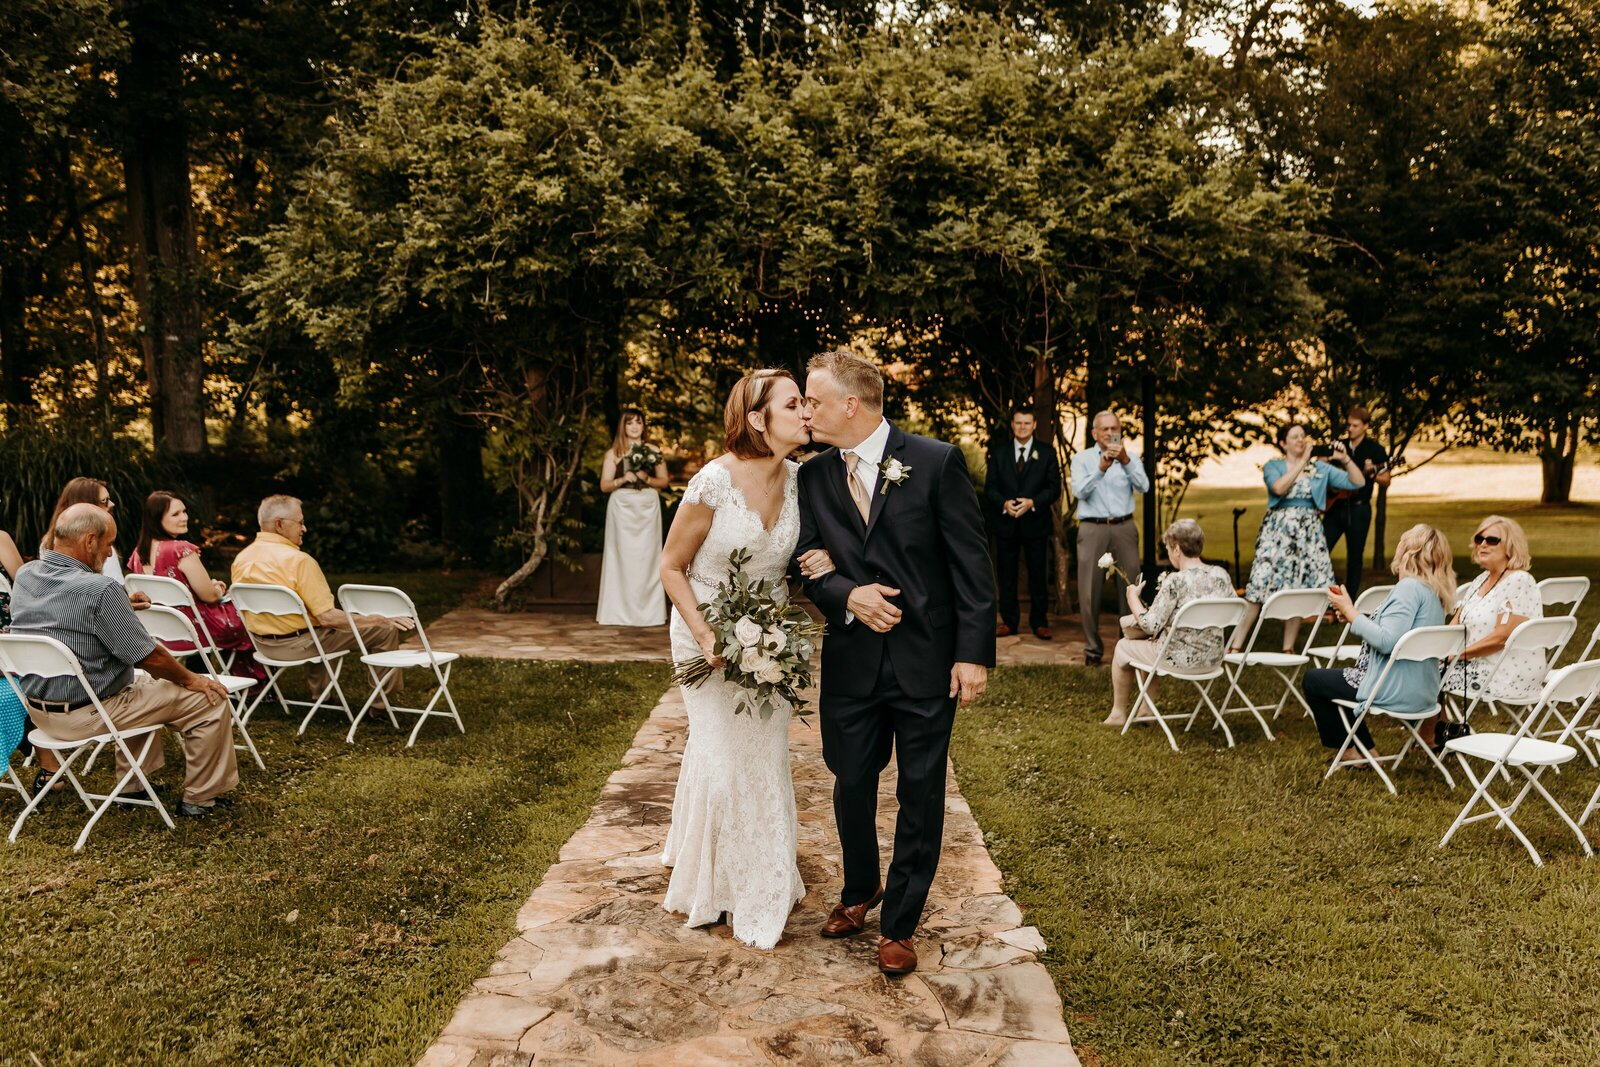 J.Michelle Photography photographs bride and groom walking down the aisle